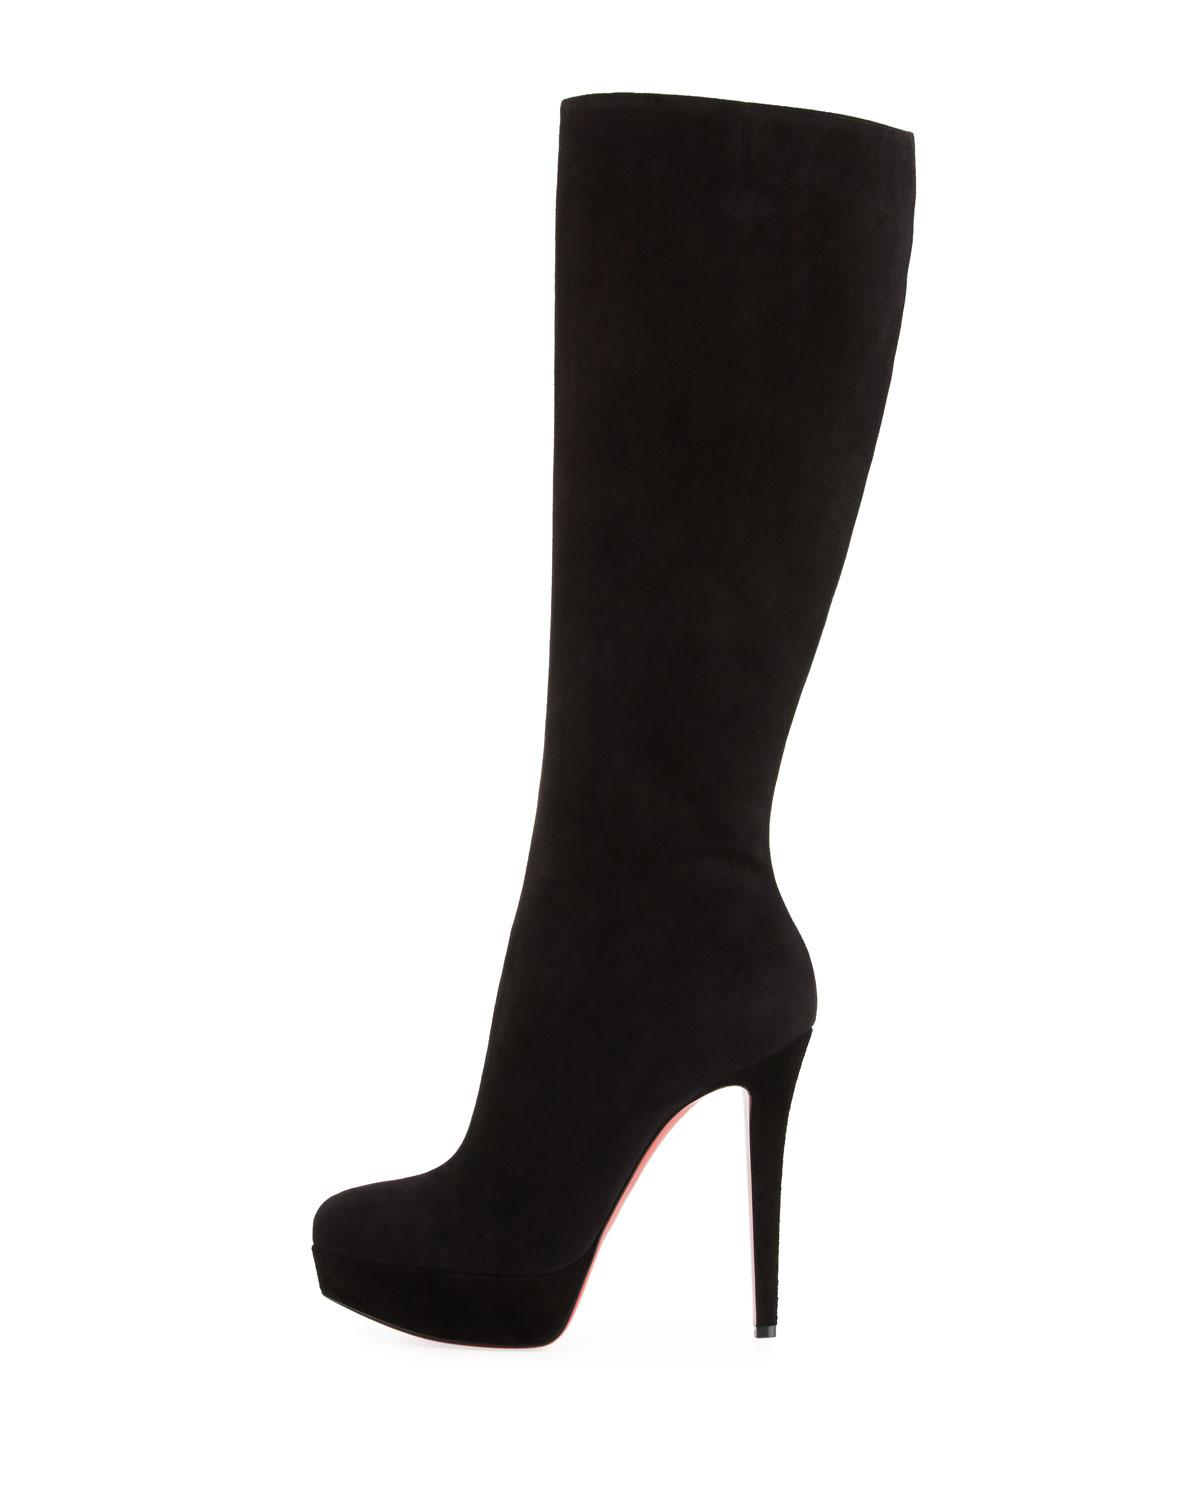 free shipping 740d2 33f74 Christian Louboutin Black Bianca Botta Suede Red Sole Boot